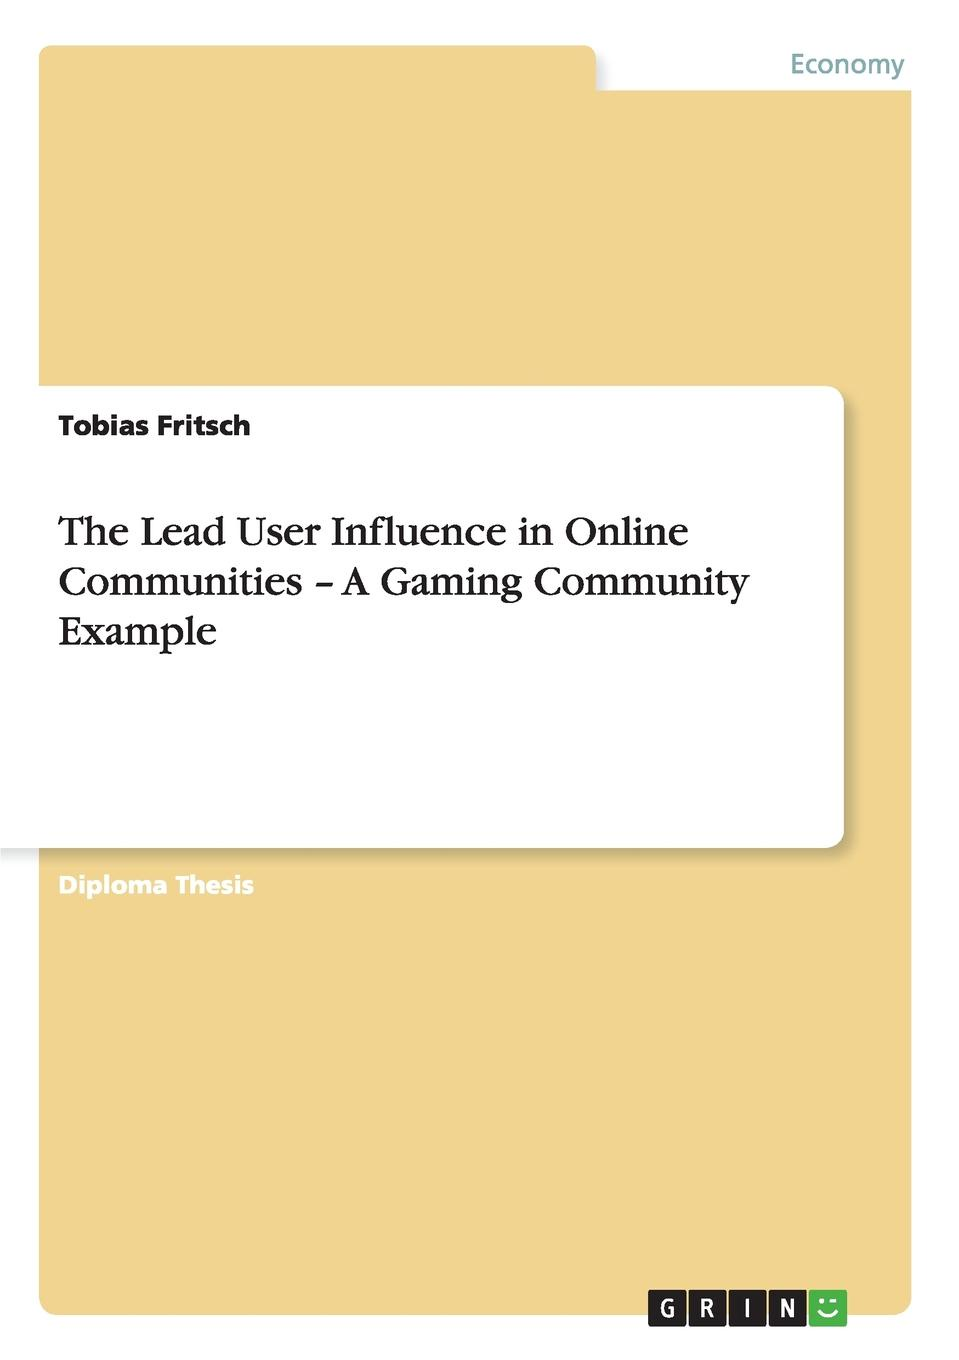 Tobias Fritsch The Lead User Influence in Online Communities - A Gaming Community Example users online